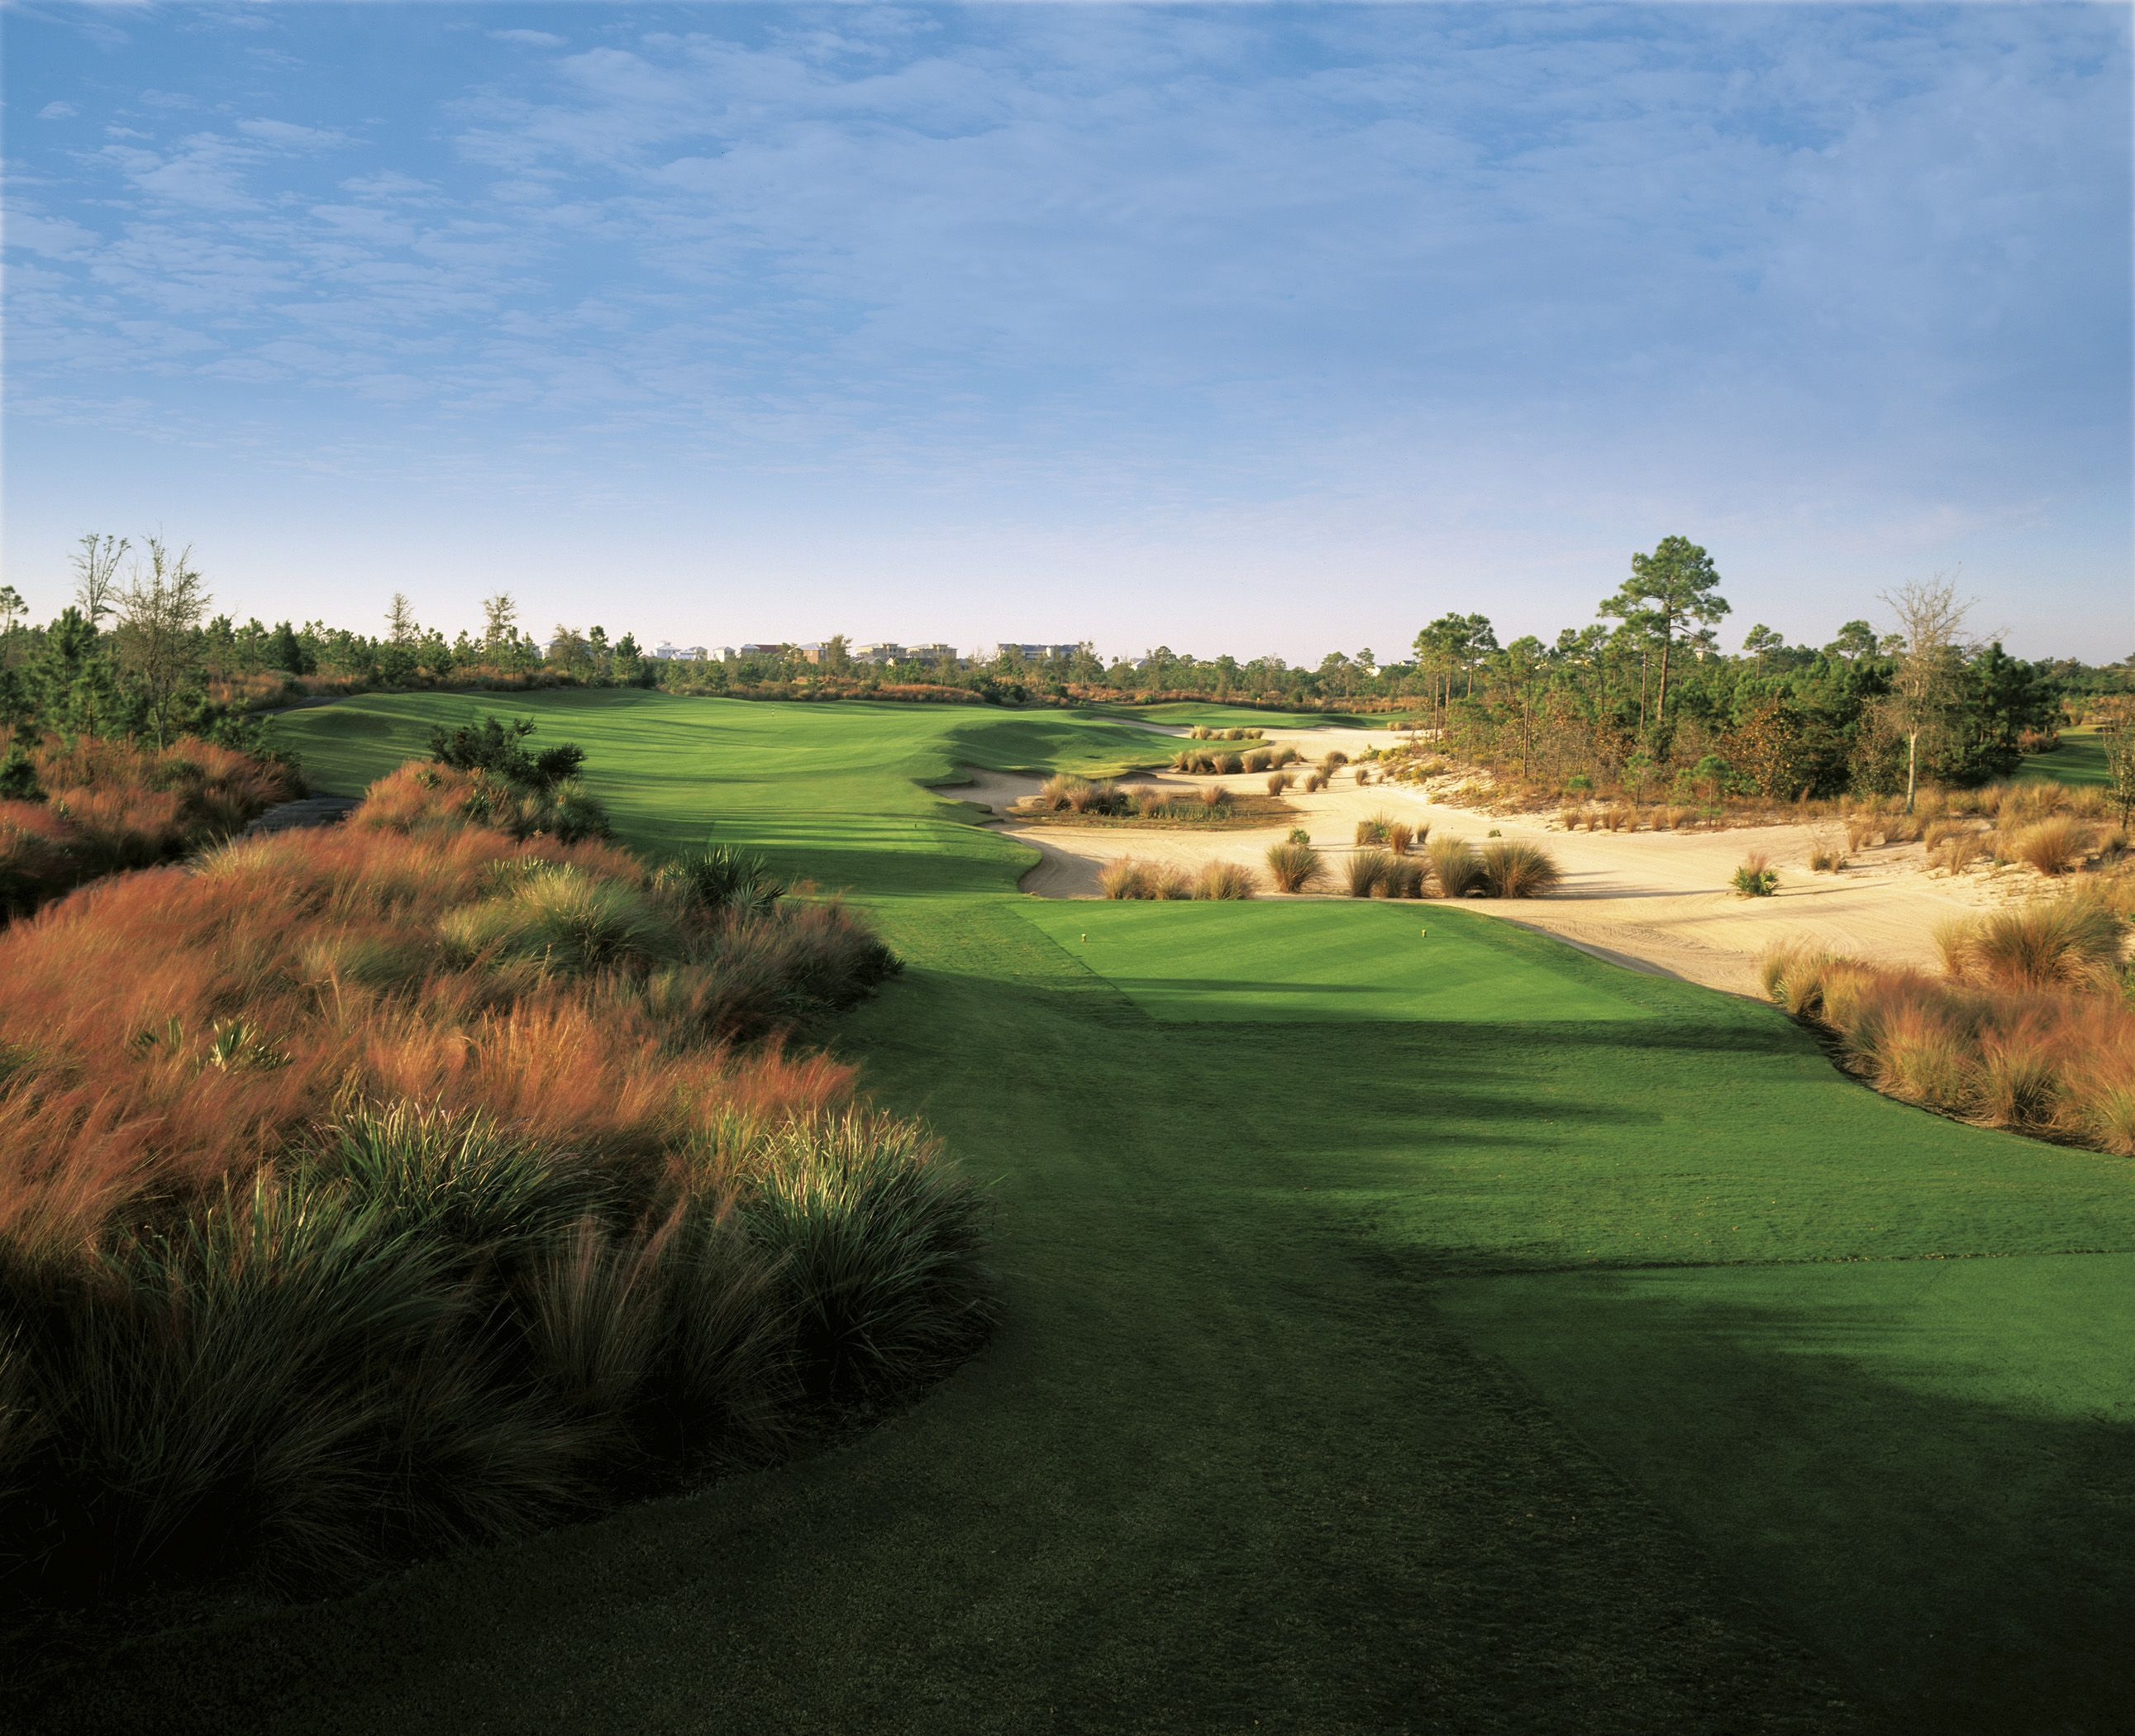 Camp Creek Golf Club Opened In 2001 And Quickly Became One Of The Region S Must Play Golf Courses Designed By Tom Fazio Camp Creek Features A Variety Of Nat